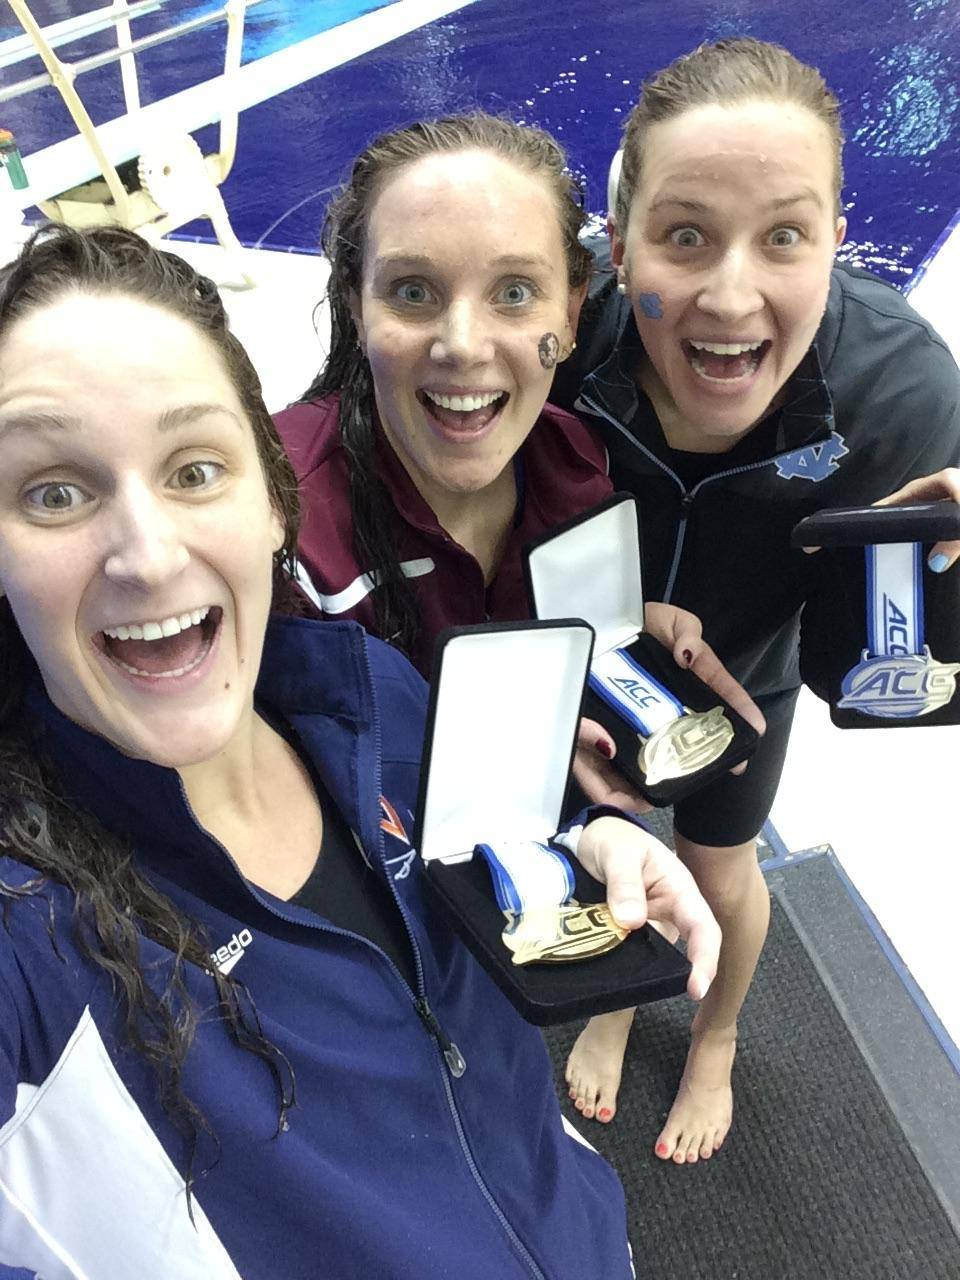 The 200 free medalists take a selfie